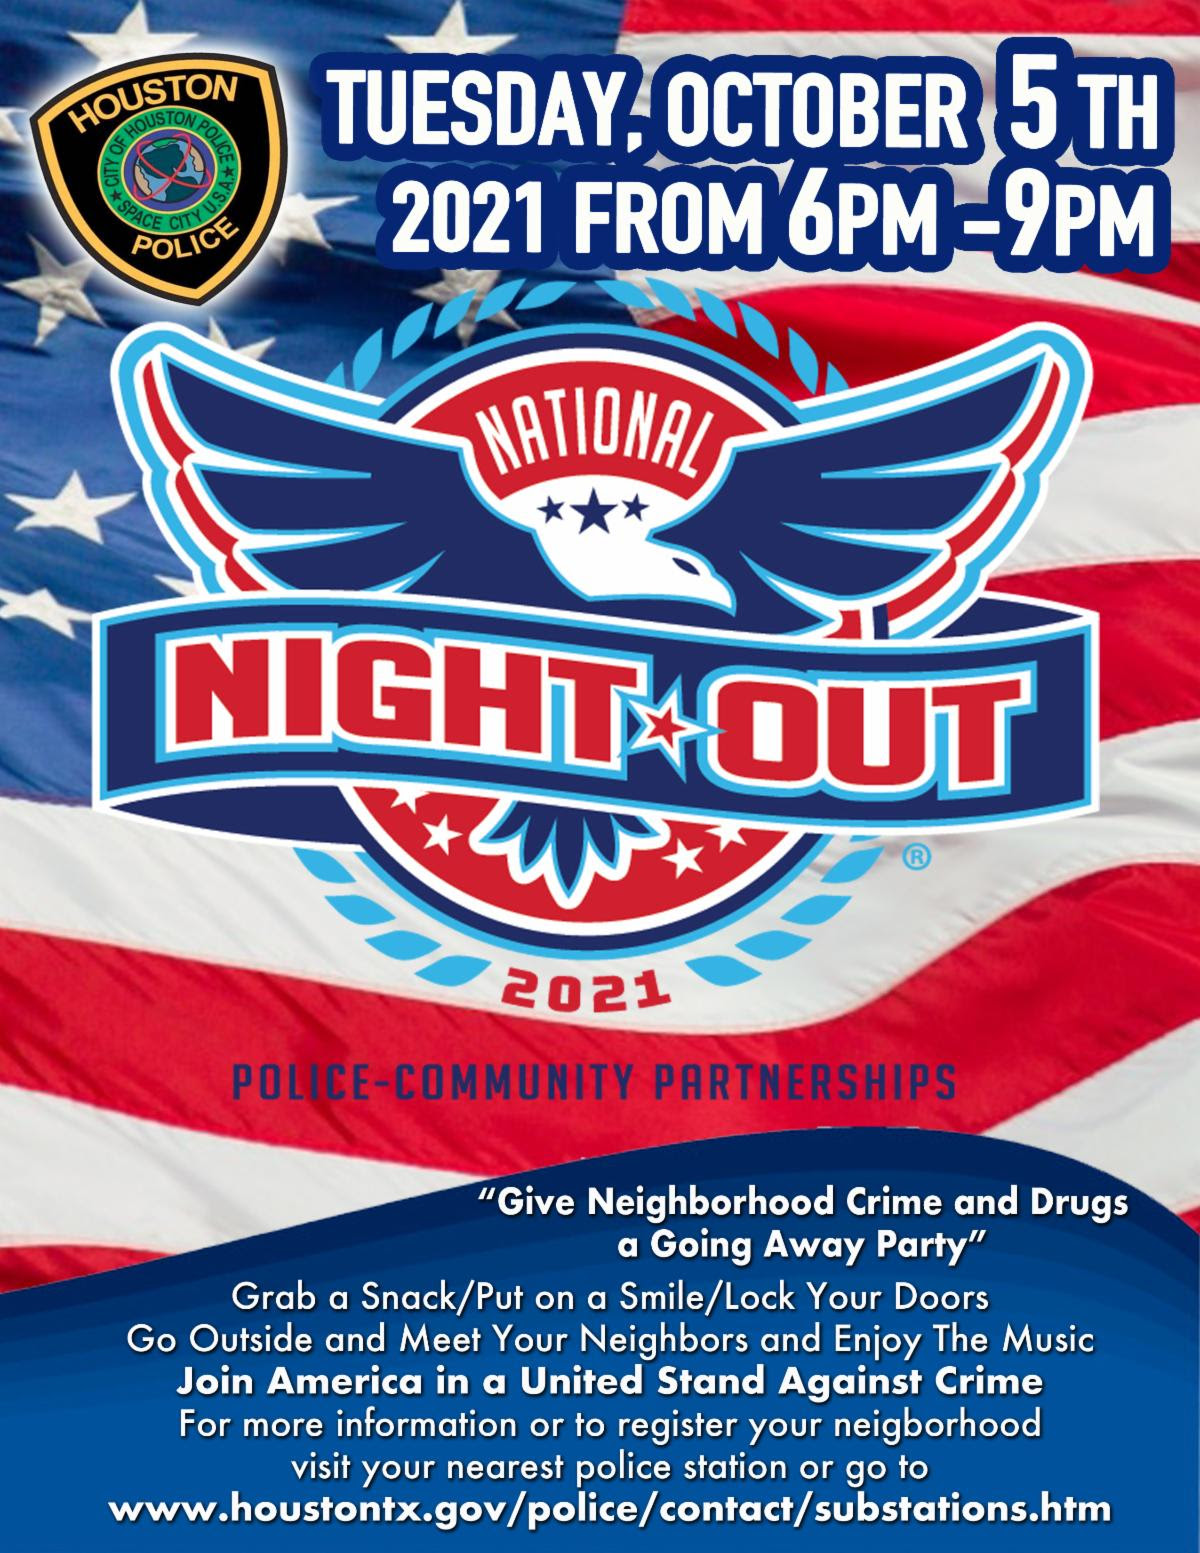 National Night Out Flyer 2021 English.jpg